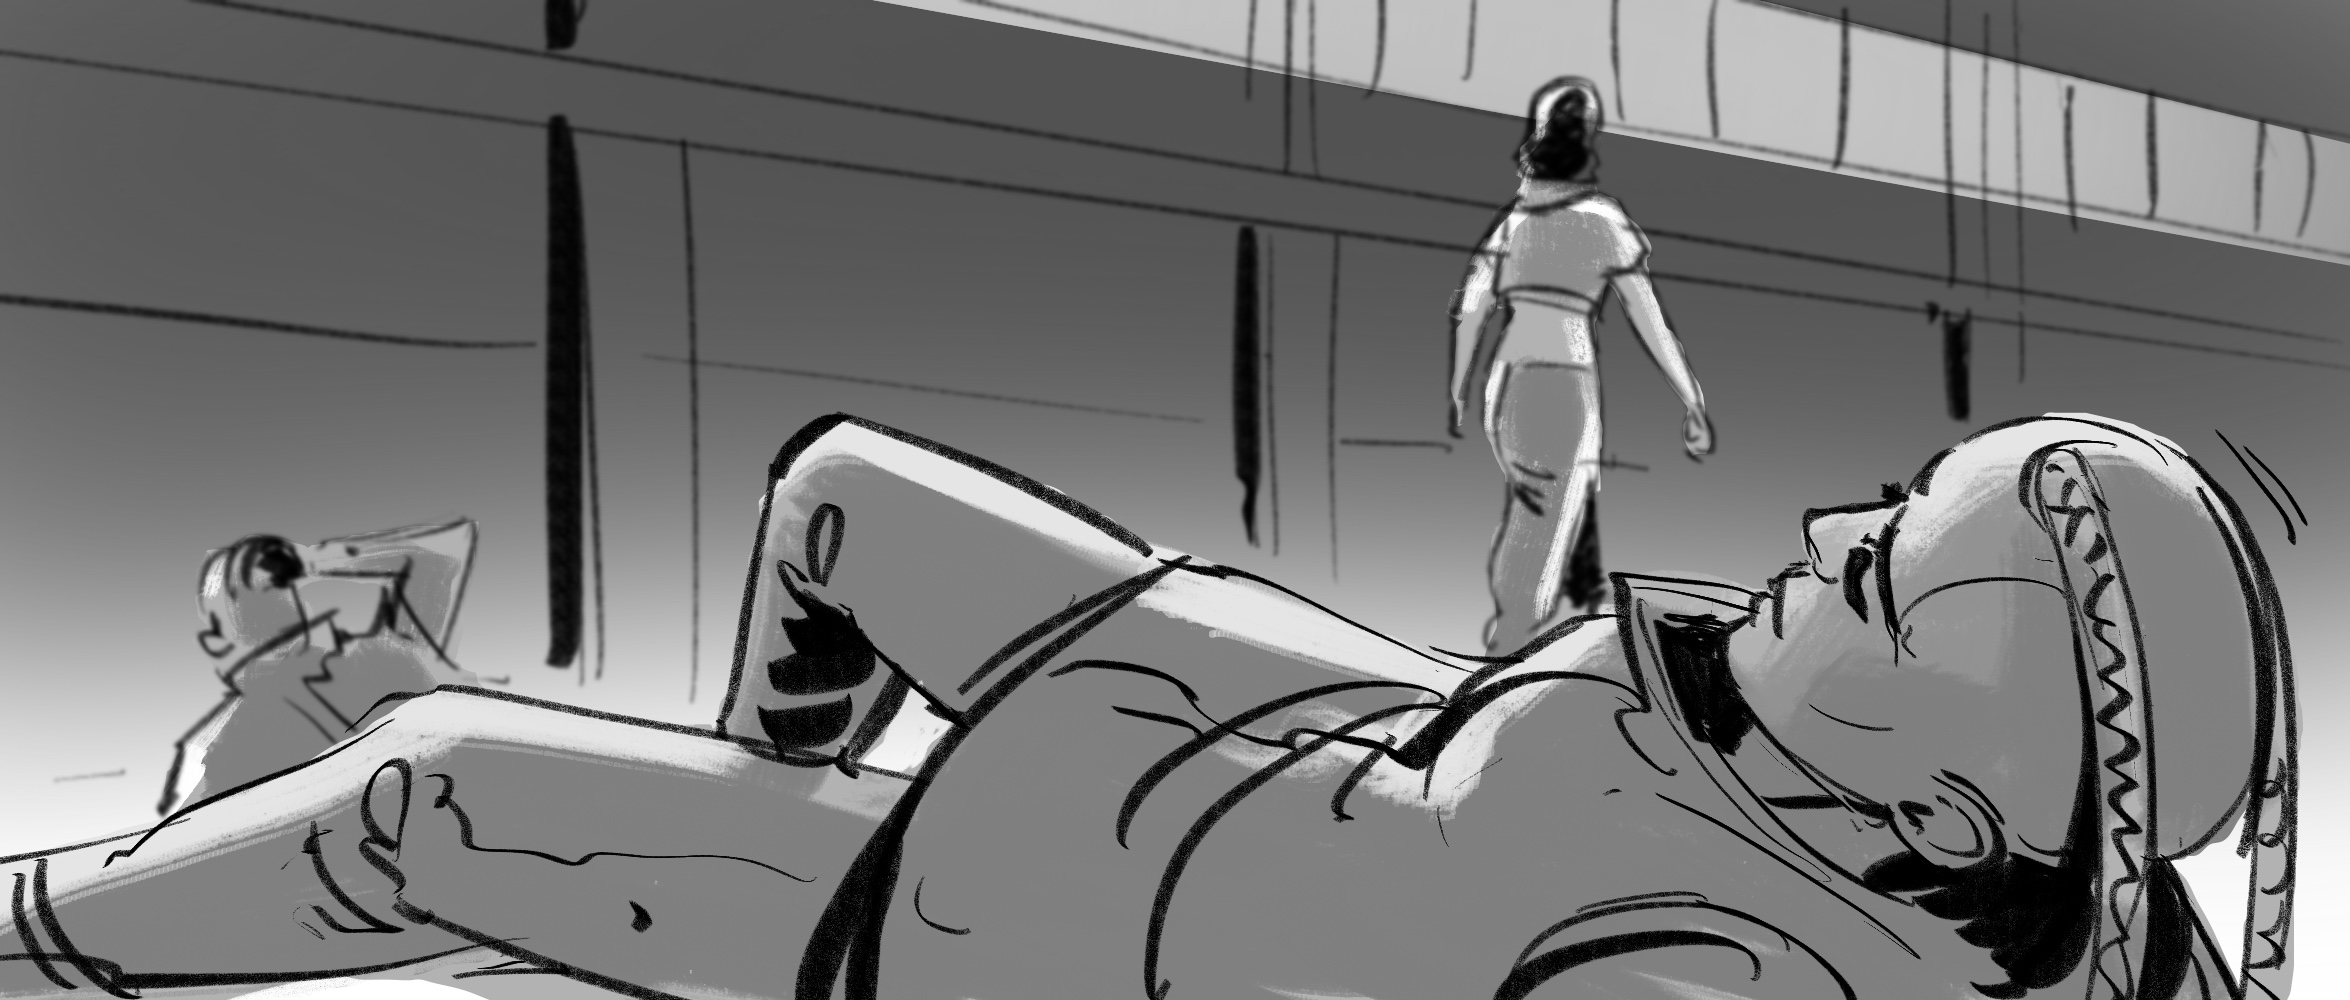 Lena_Boundaries_Storyboard_10_v02.jpg